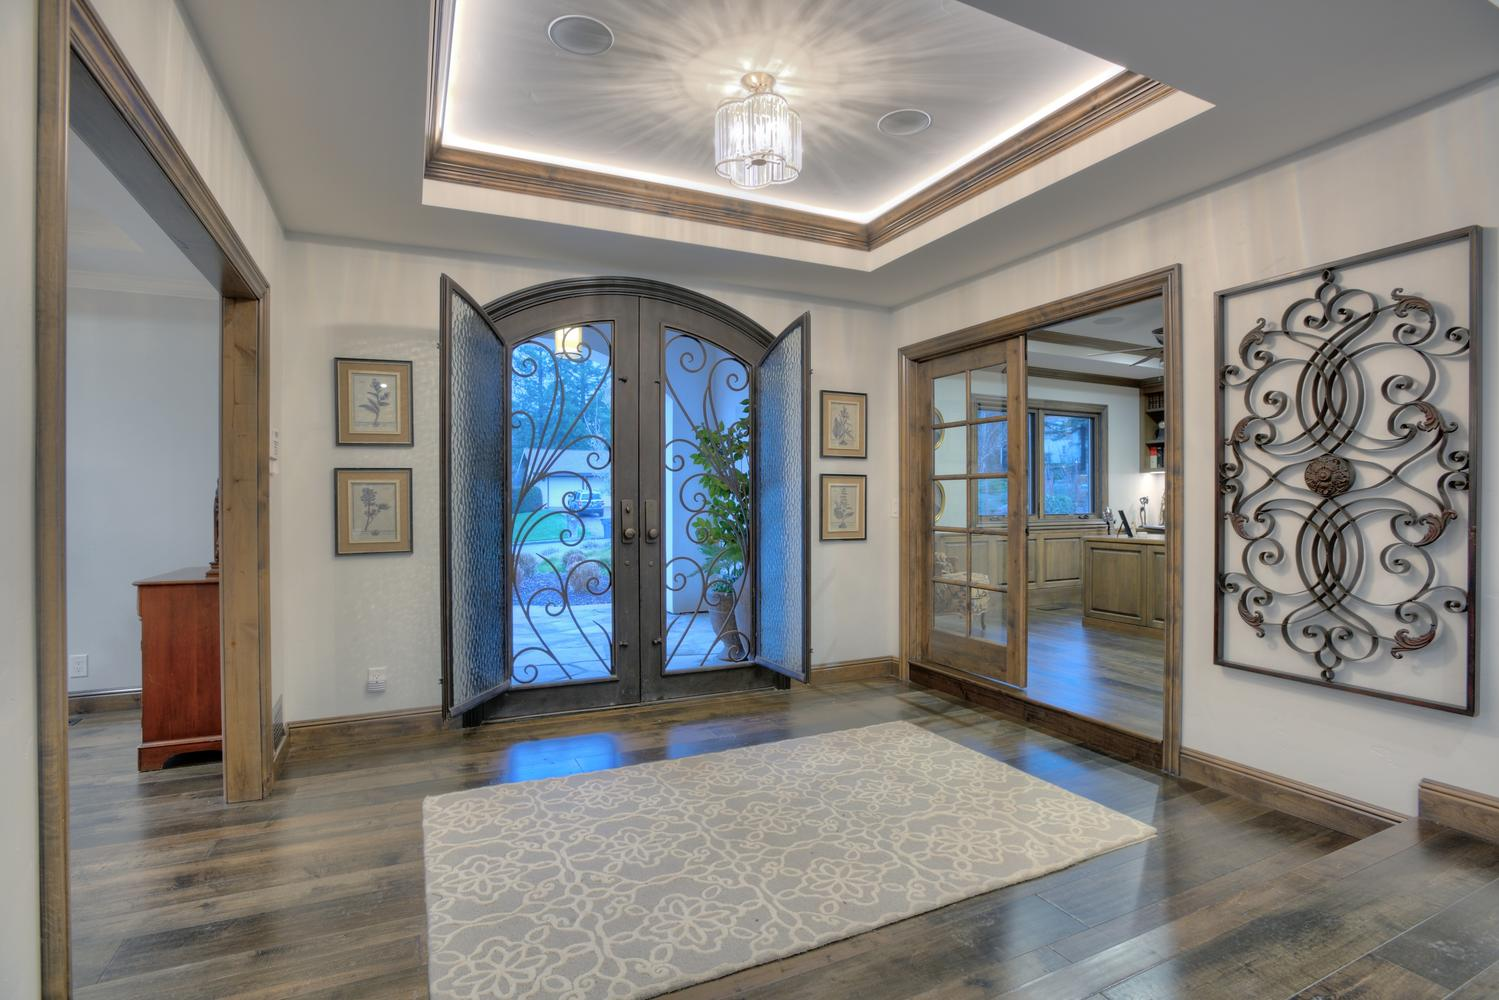 15977 Grandview Dr Monte-large-012-35-Foyer with Door Windows Open-1499x1000-72dpi.jpg